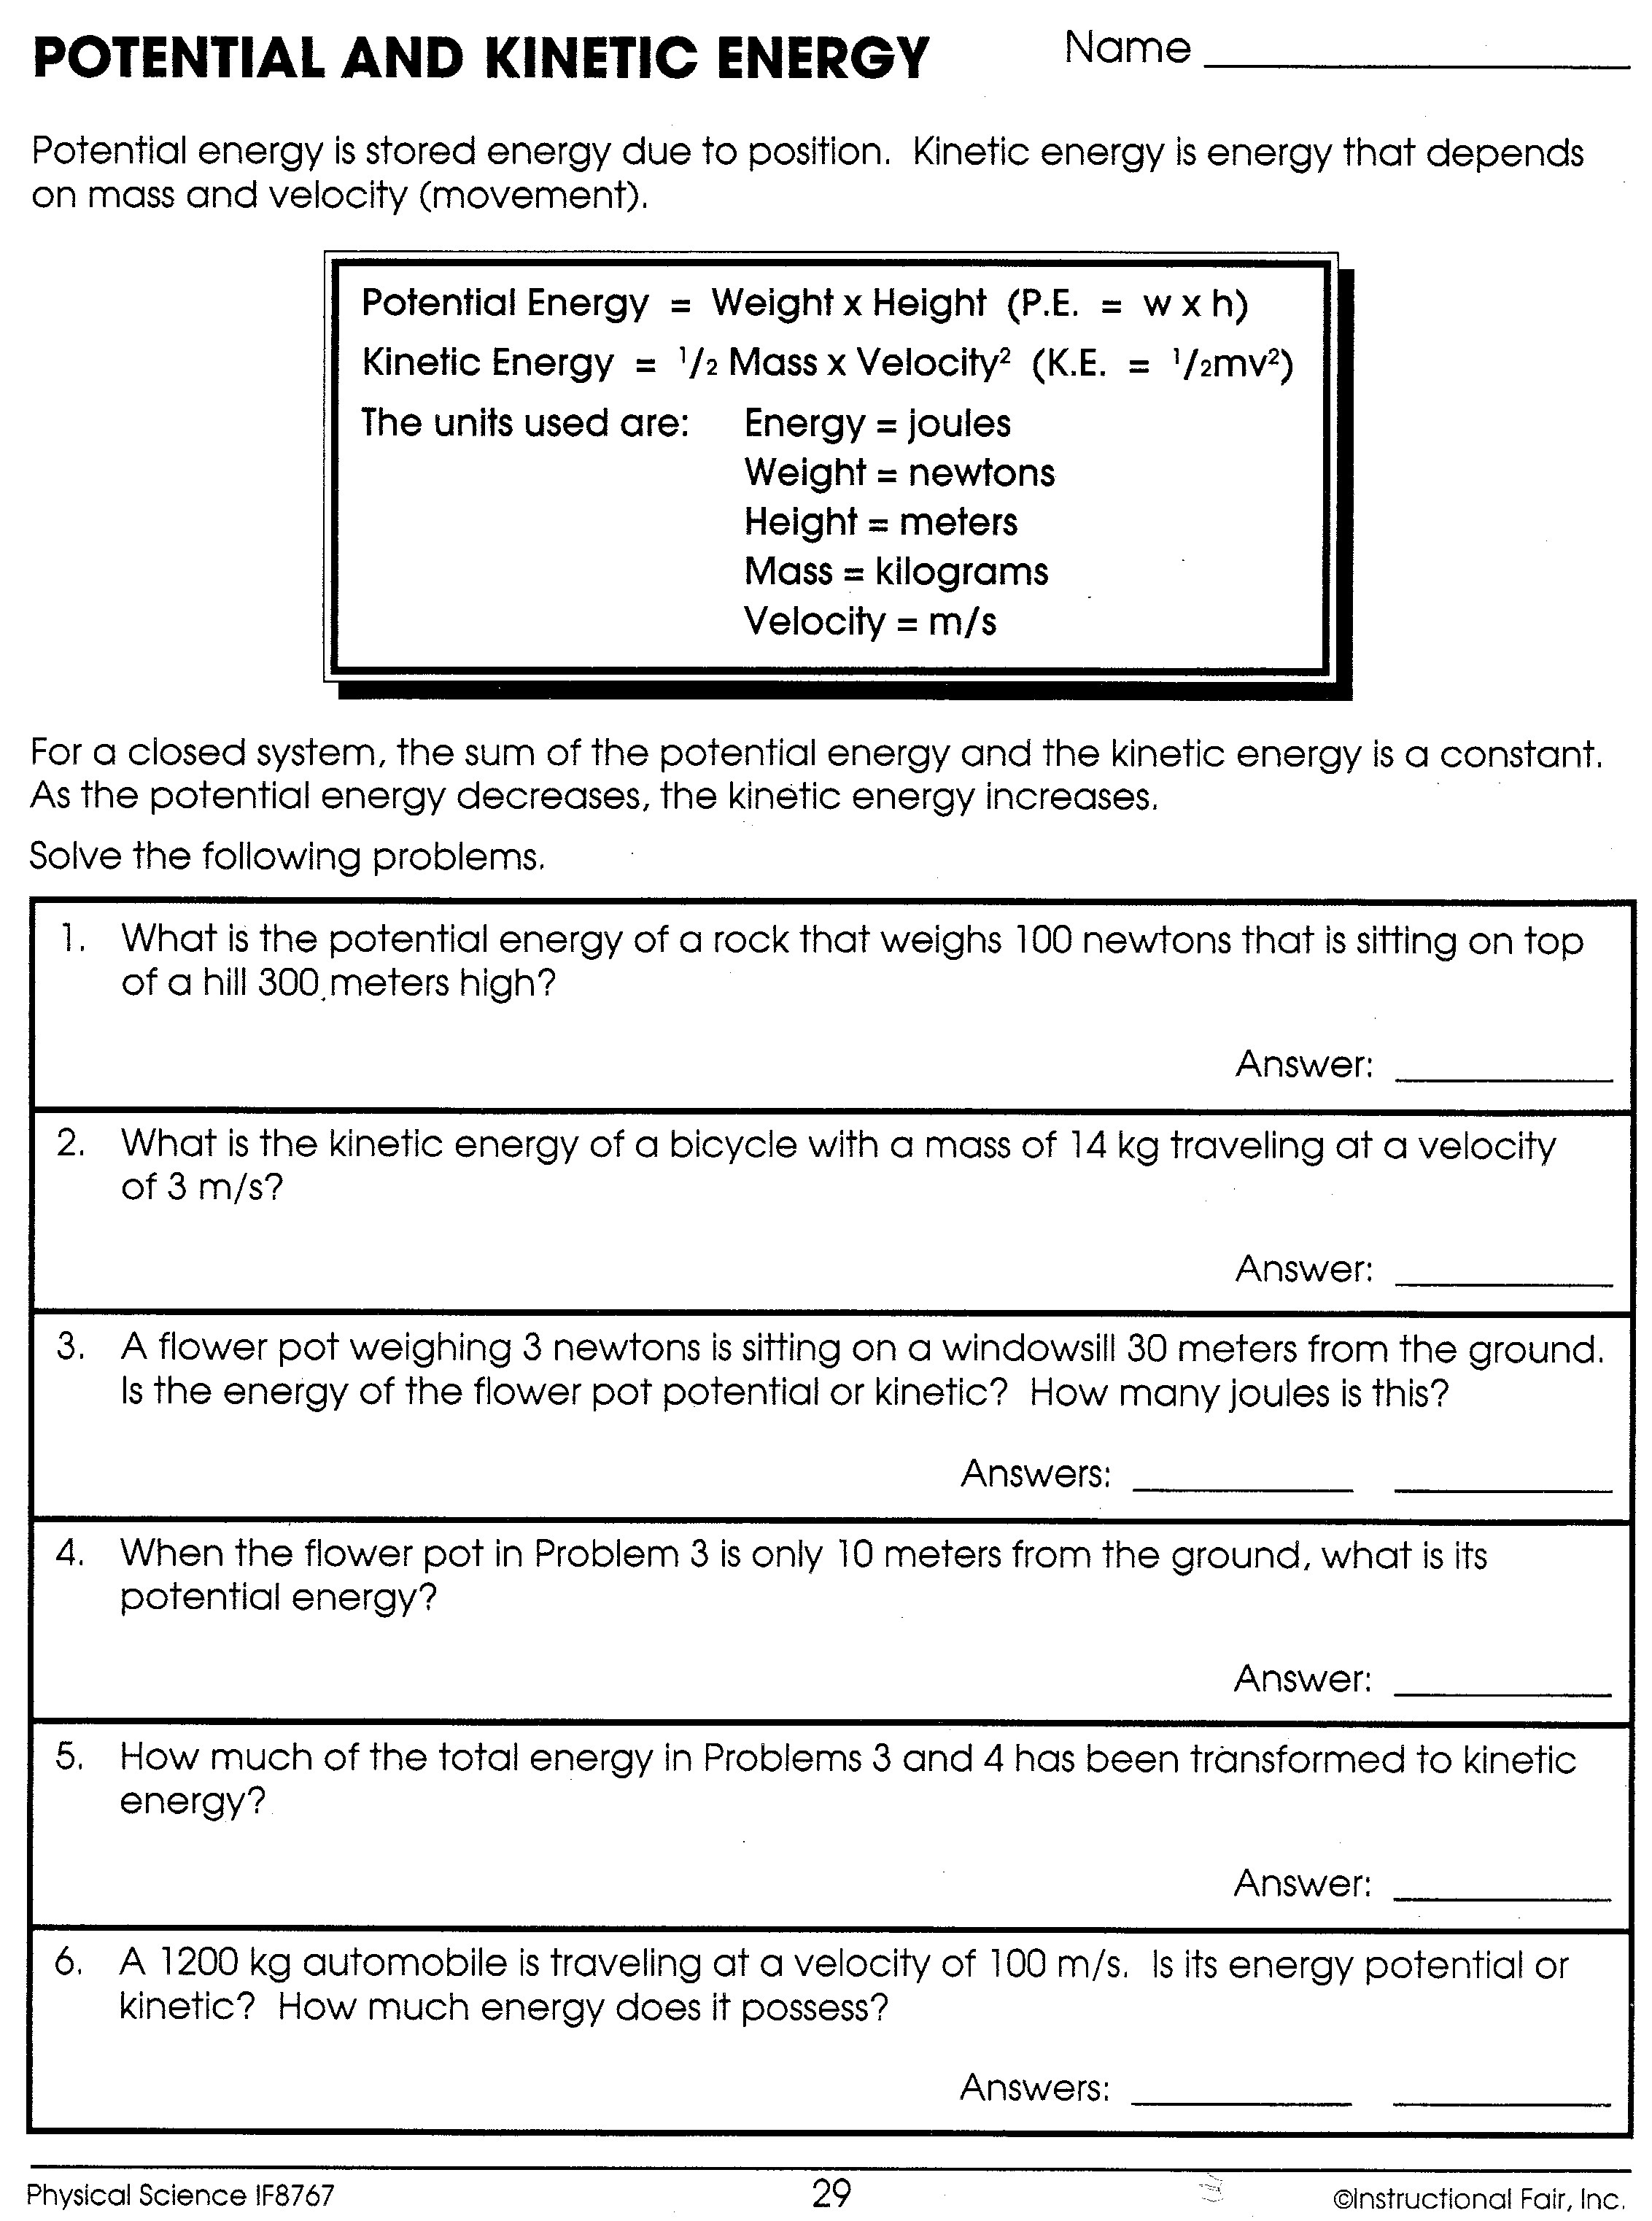 30 Forms Of Energy Worksheet